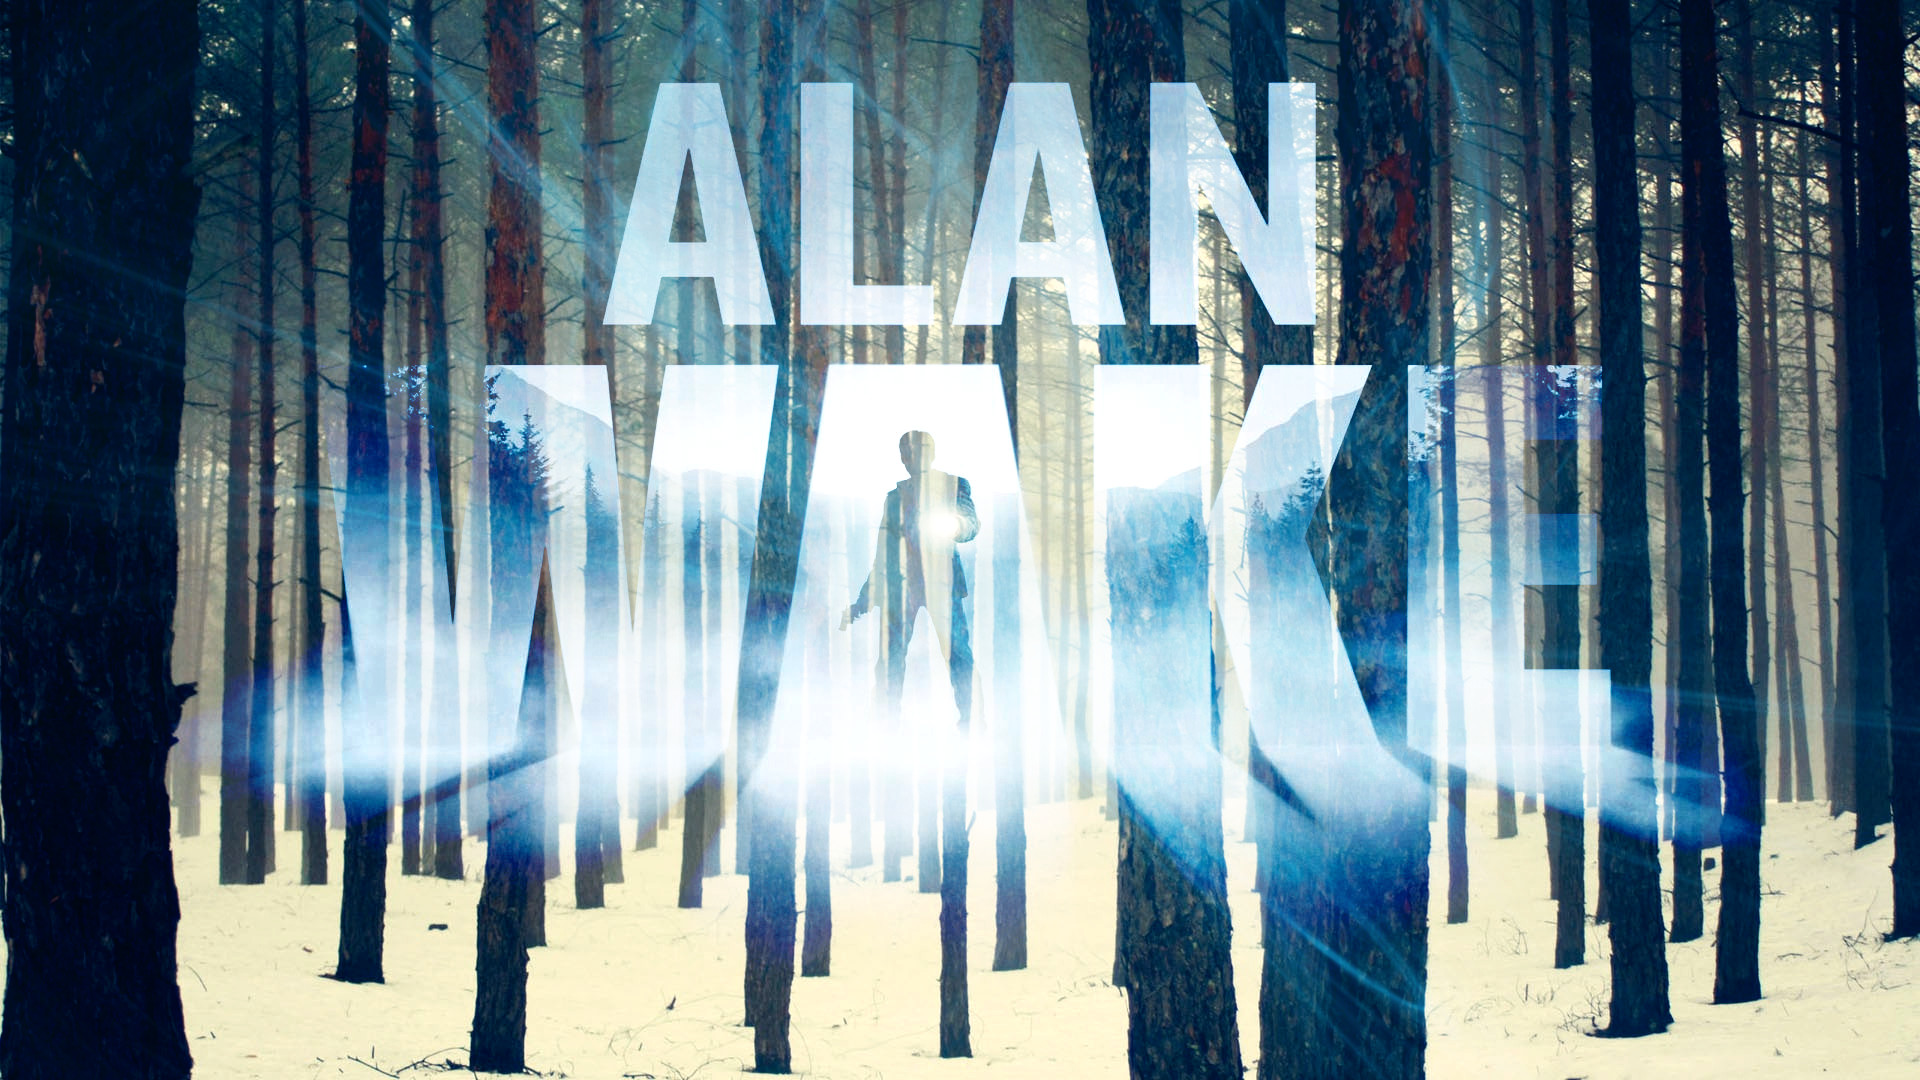 1920x1080 Alan Wake Wallpaper 2 by waslosman Alan Wake Wallpaper 2 by waslosman